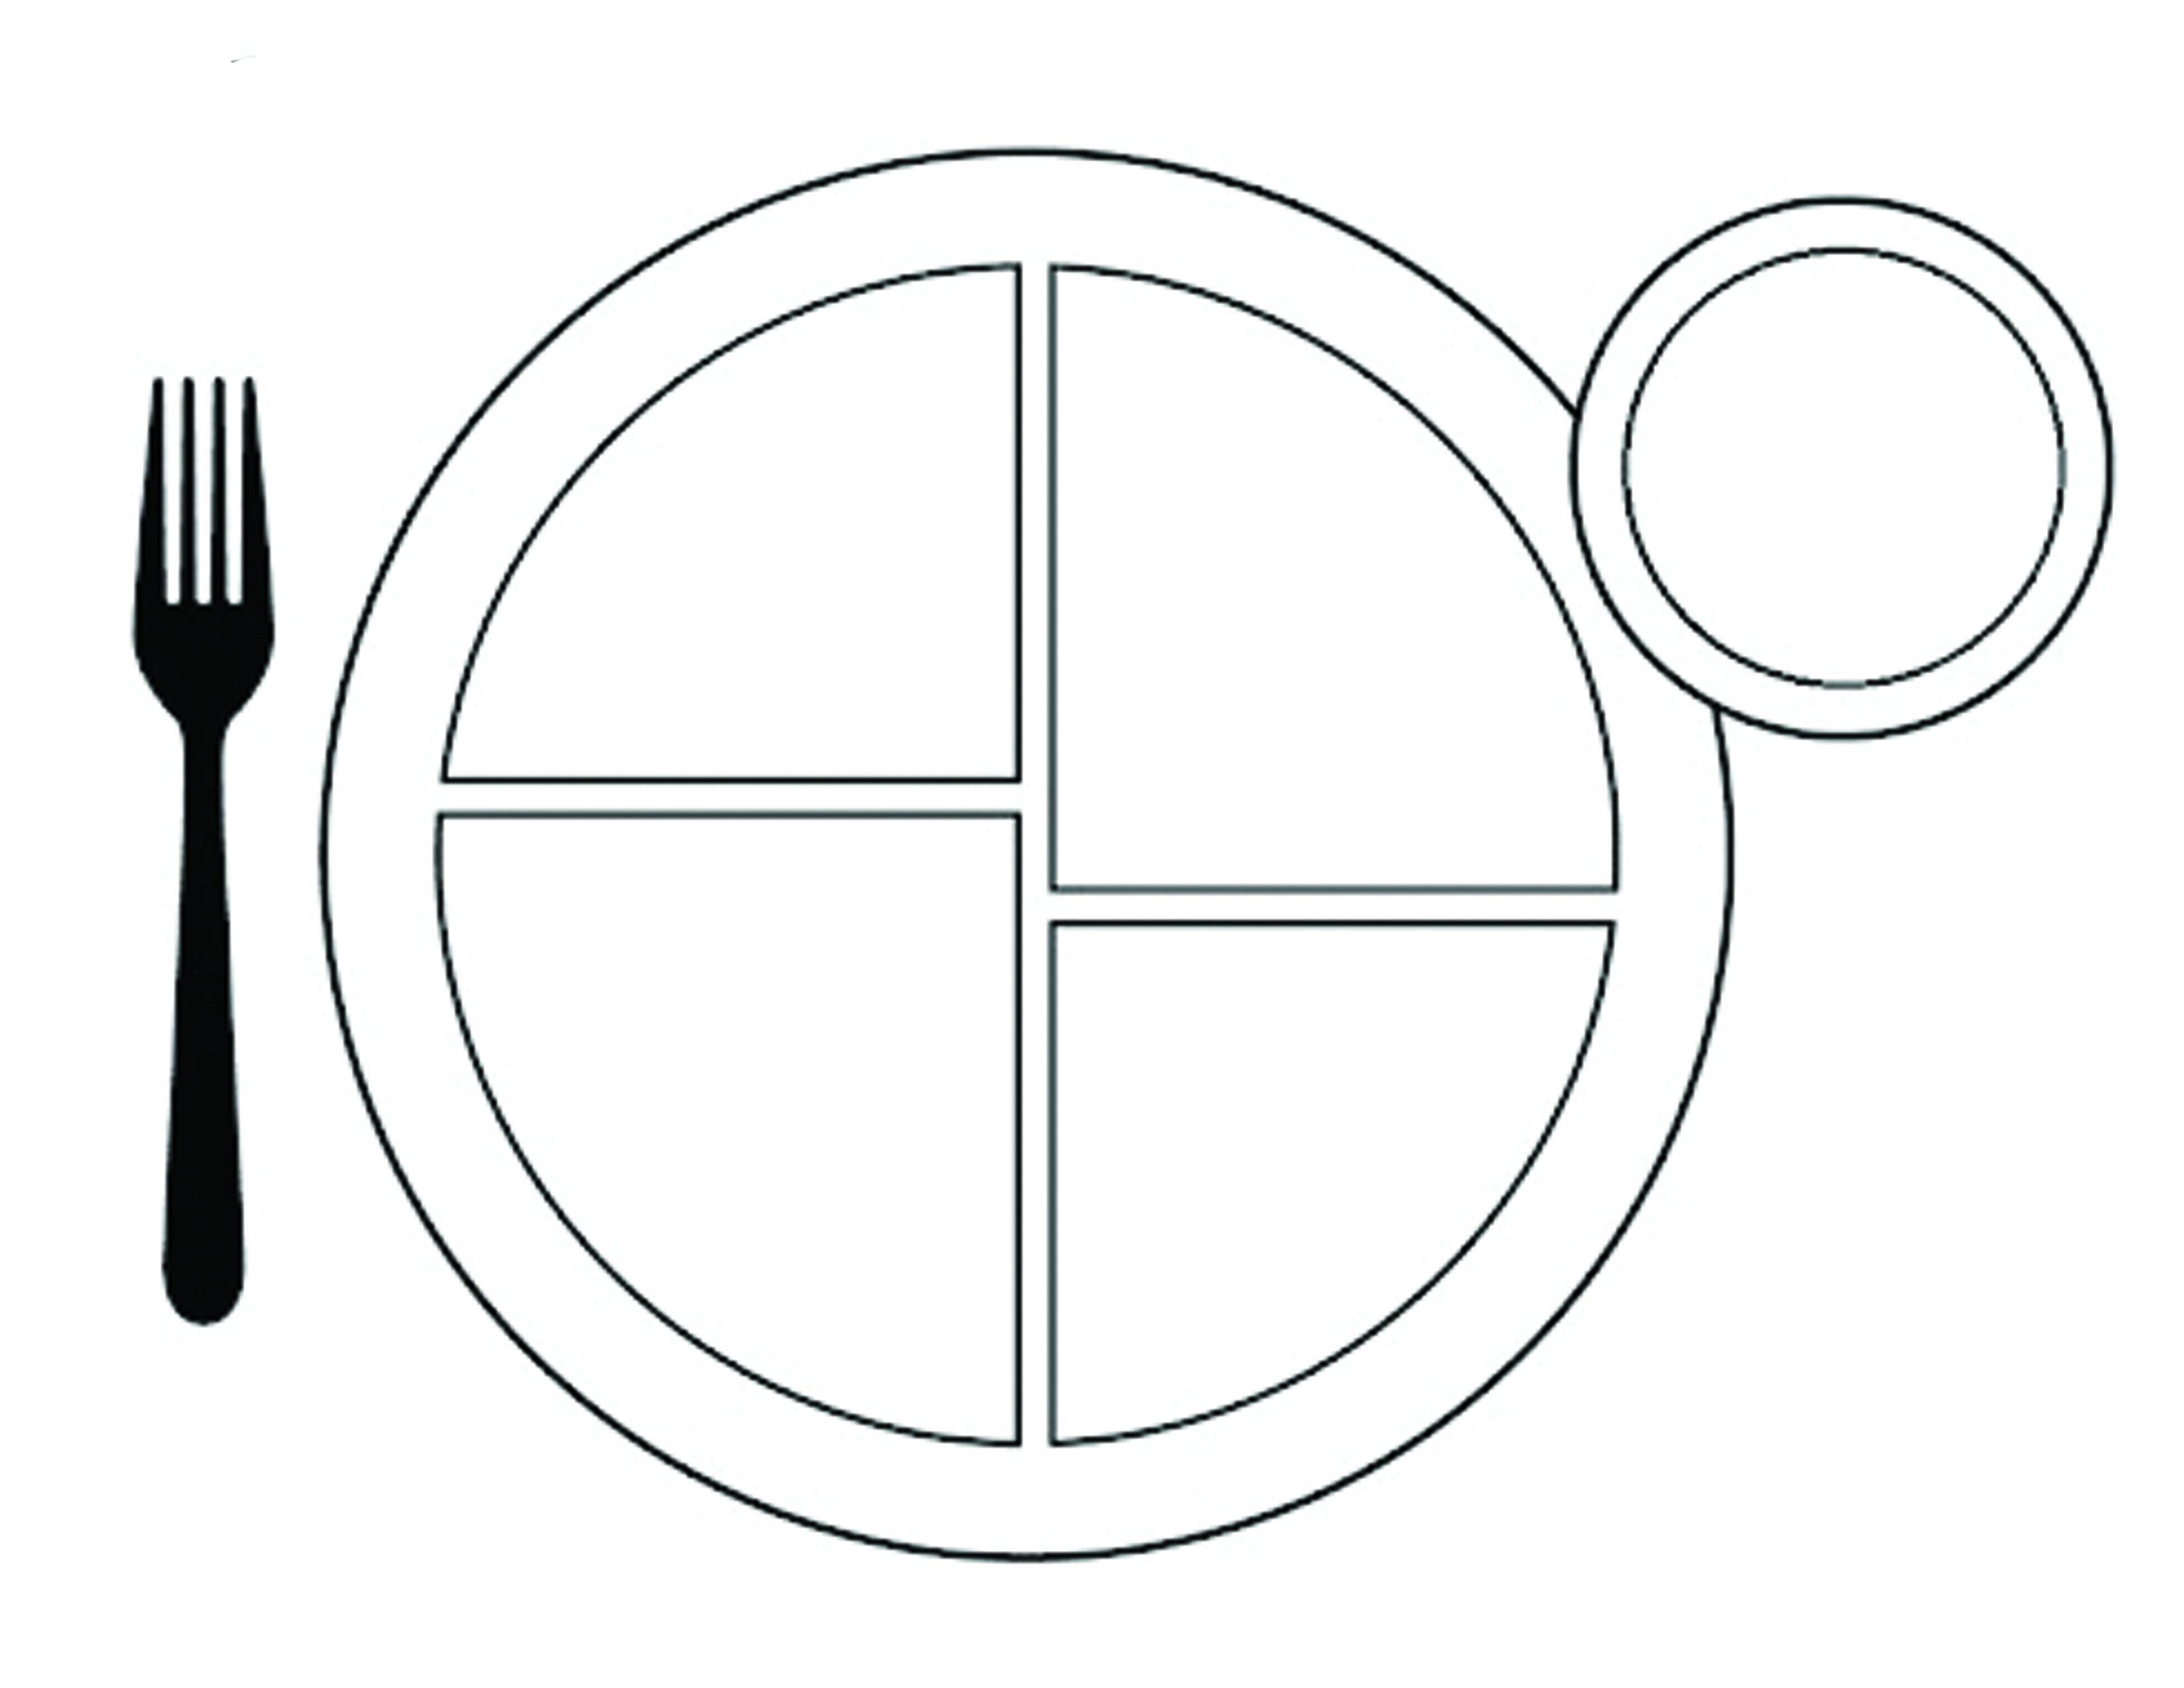 Eating Plate Coloring Pages